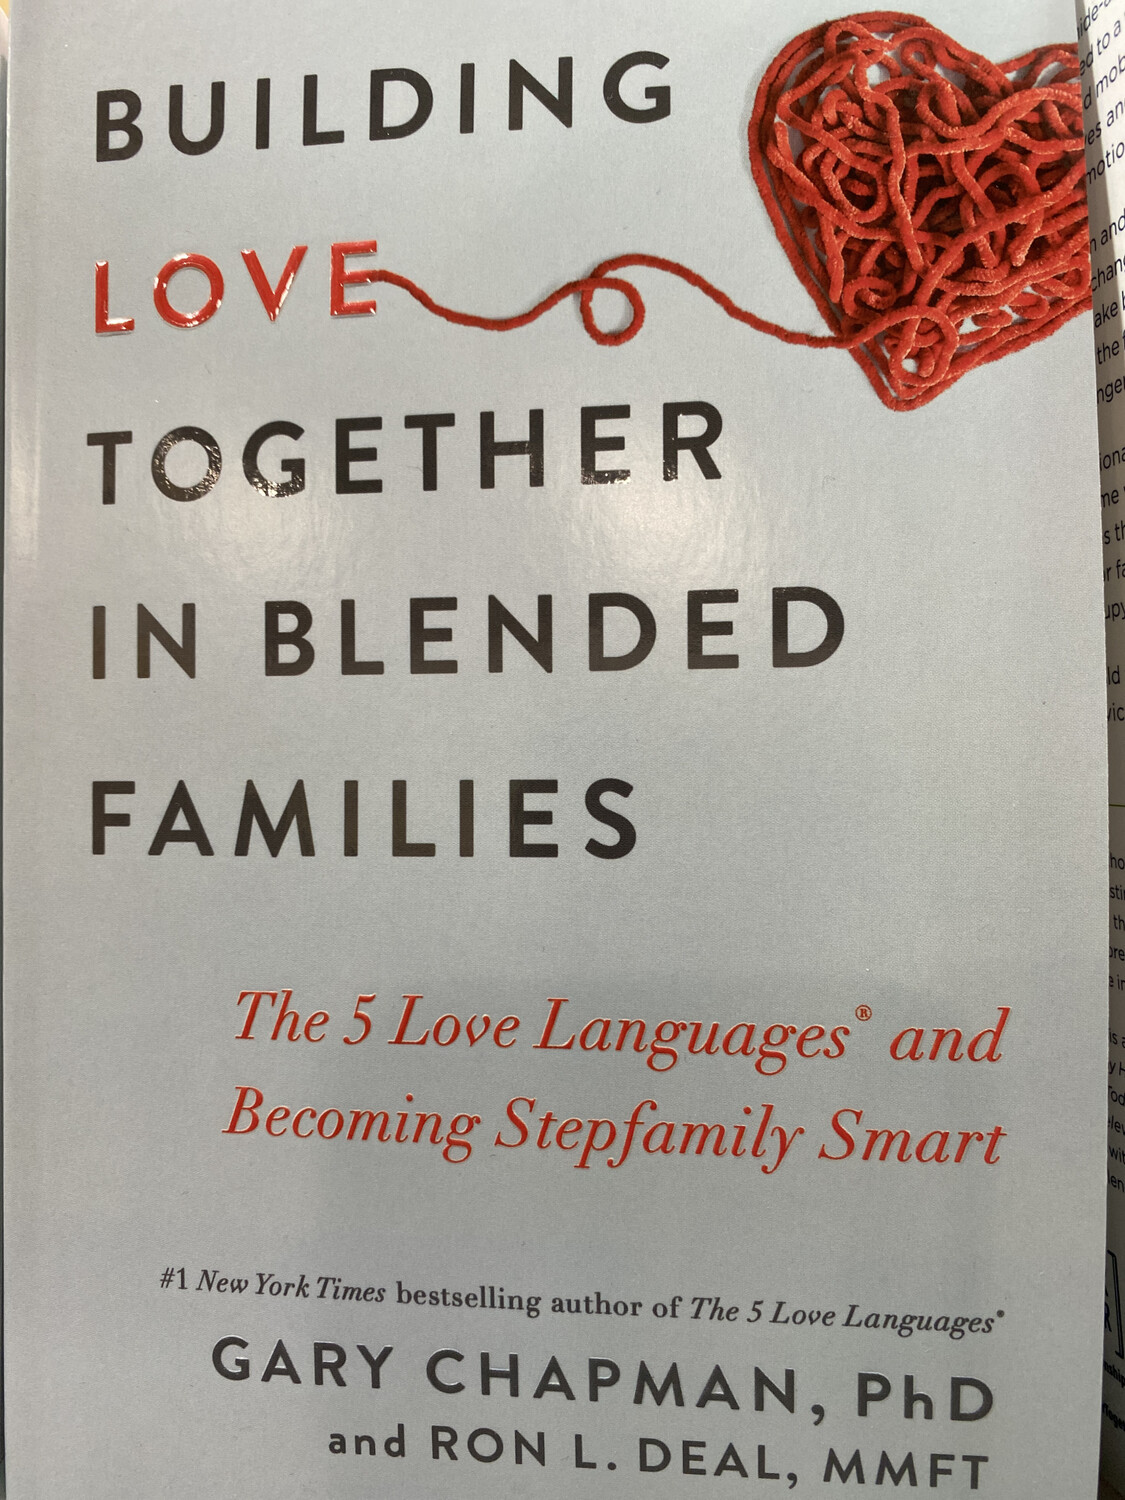 CHAPMAN, Building Love Together In Blended Families